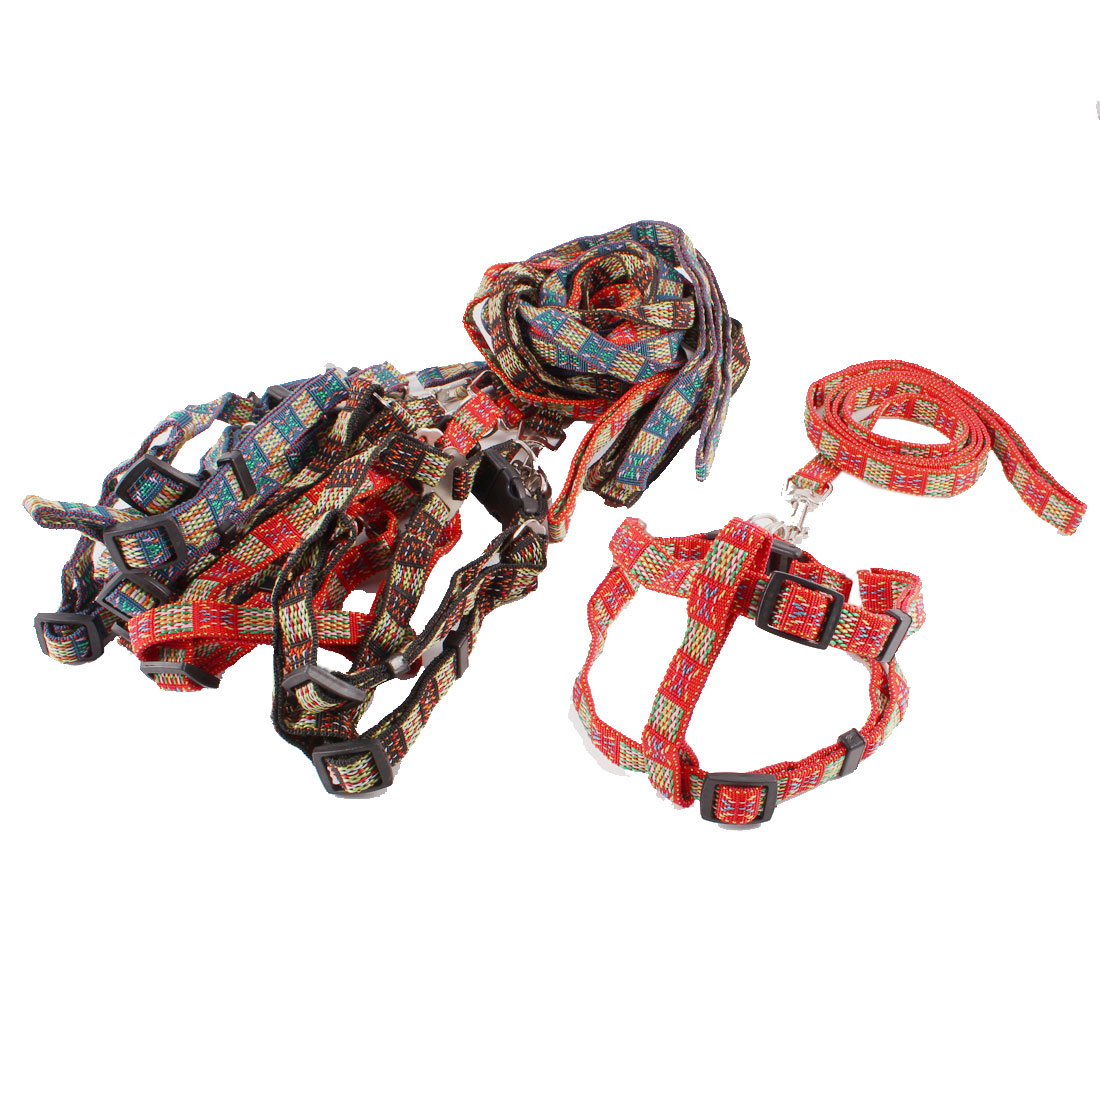 Assorted Color Braided Strap Doggie Dog Collar Halter Harness Leash 6 Pcs